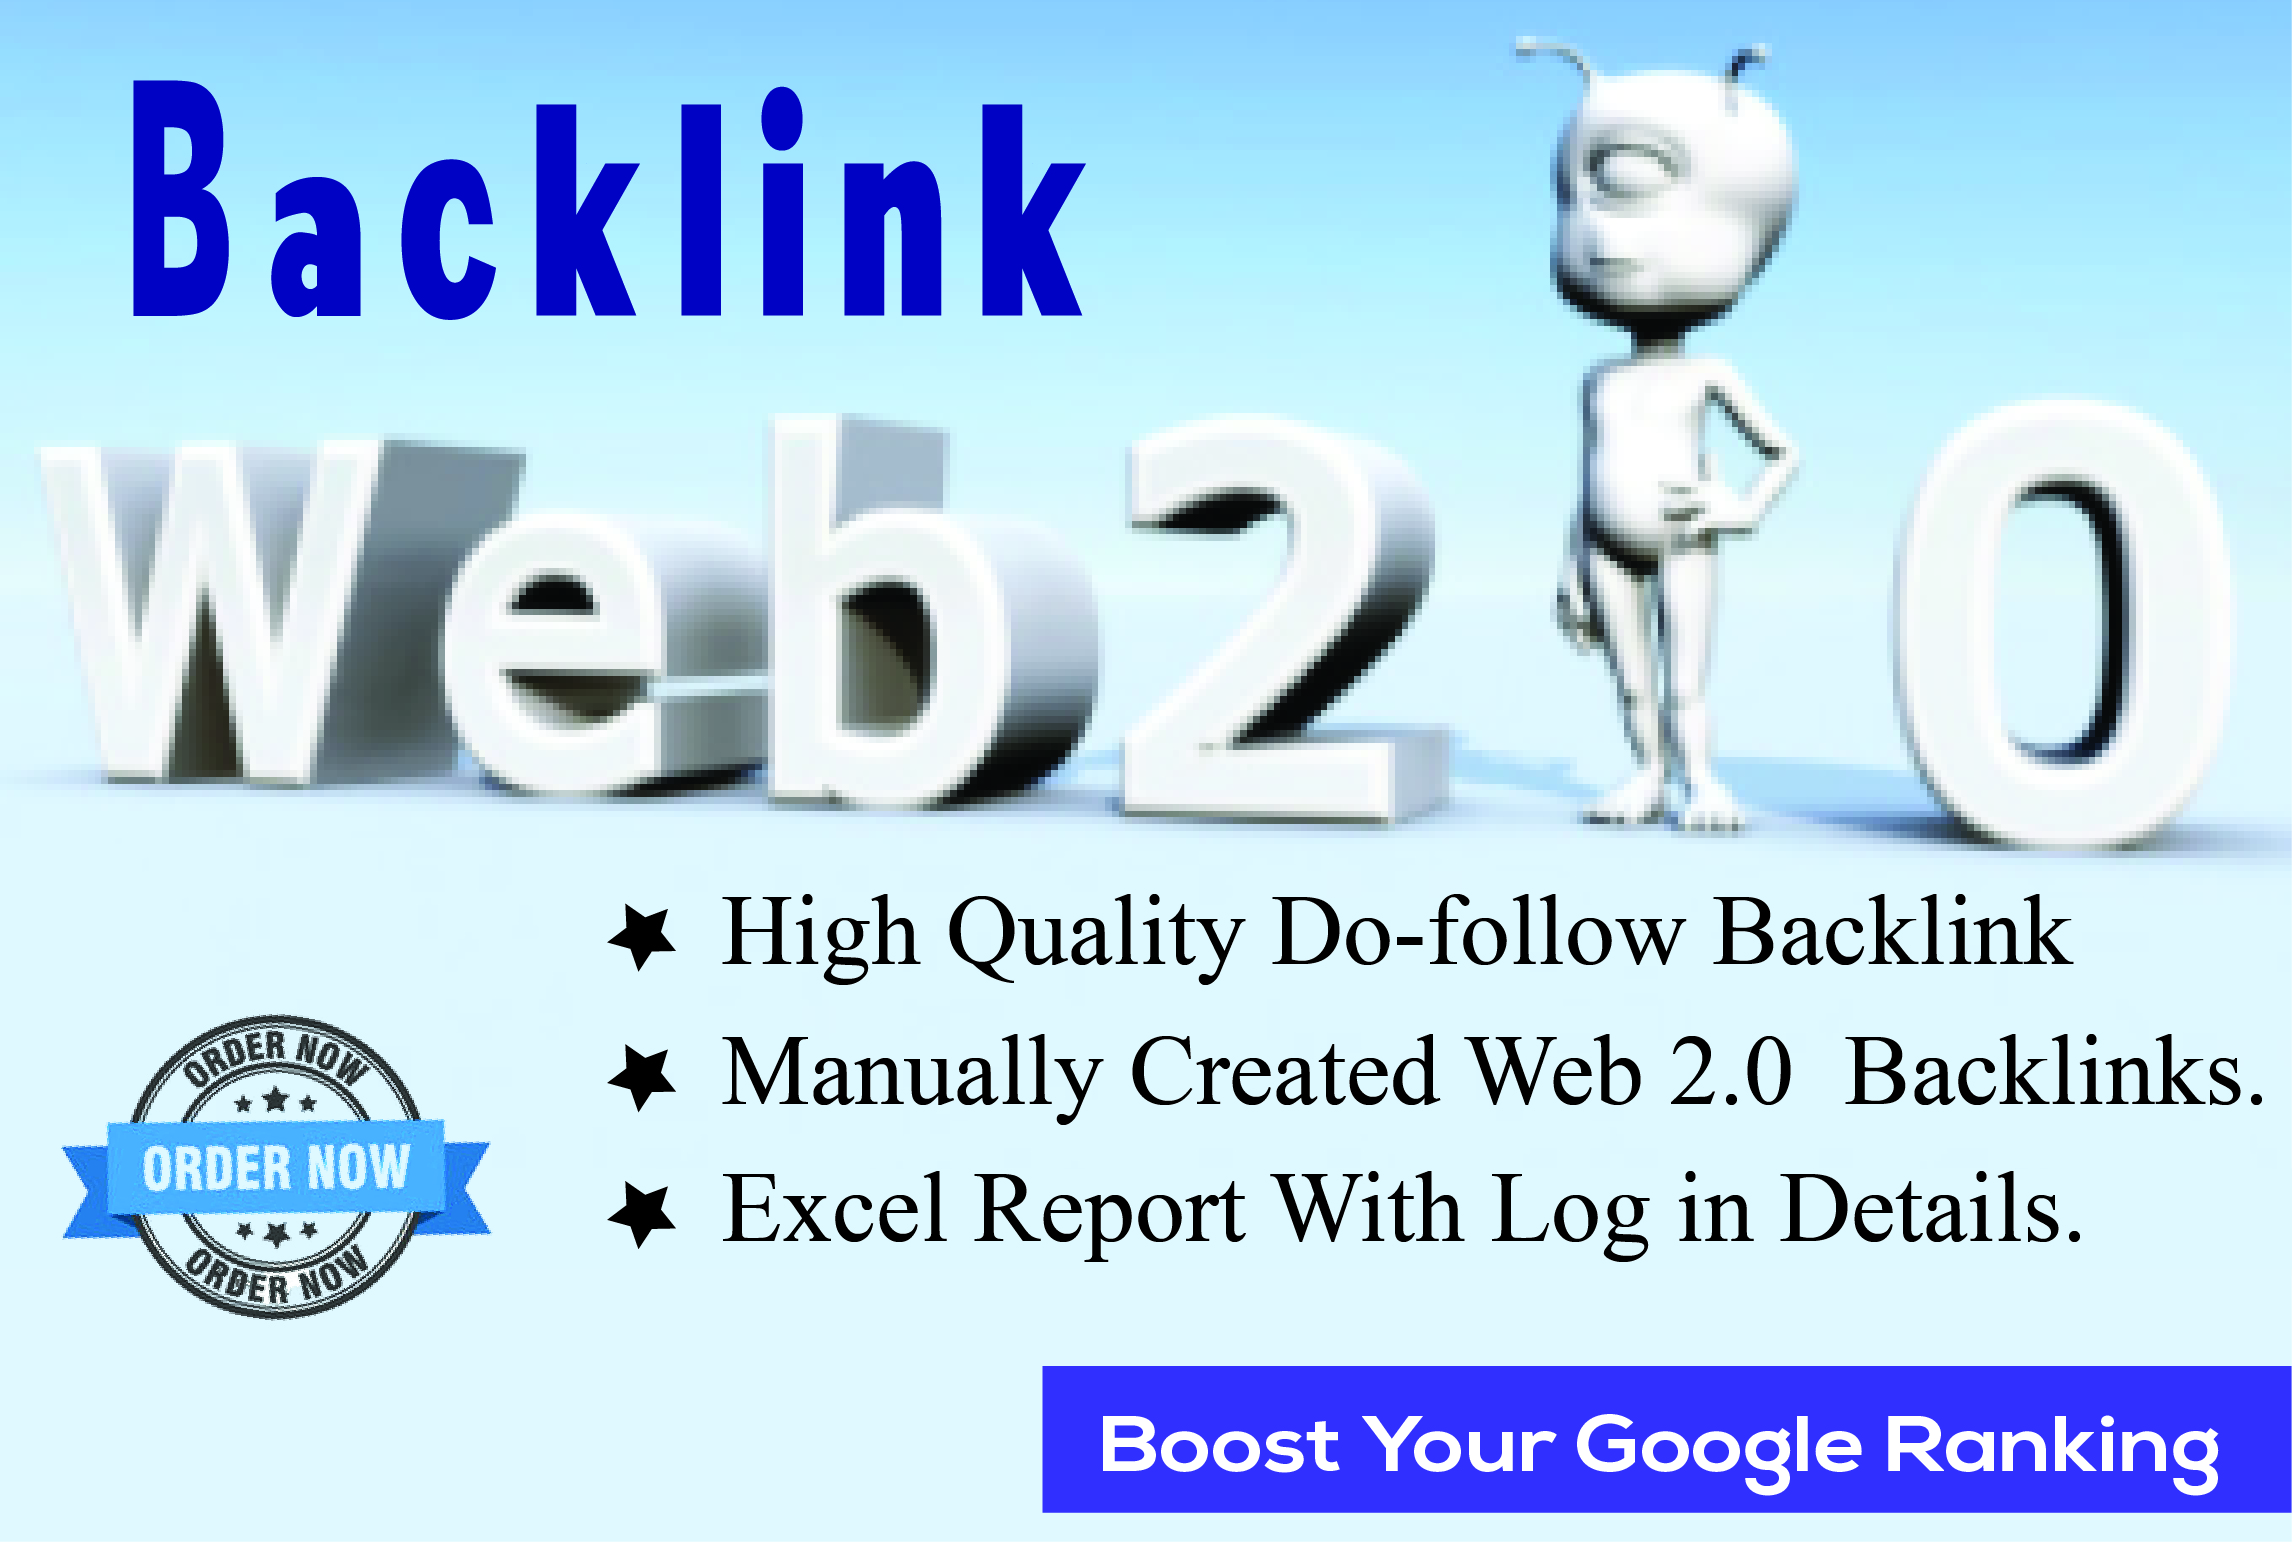 I well do creation web 2.0 backlink for your website